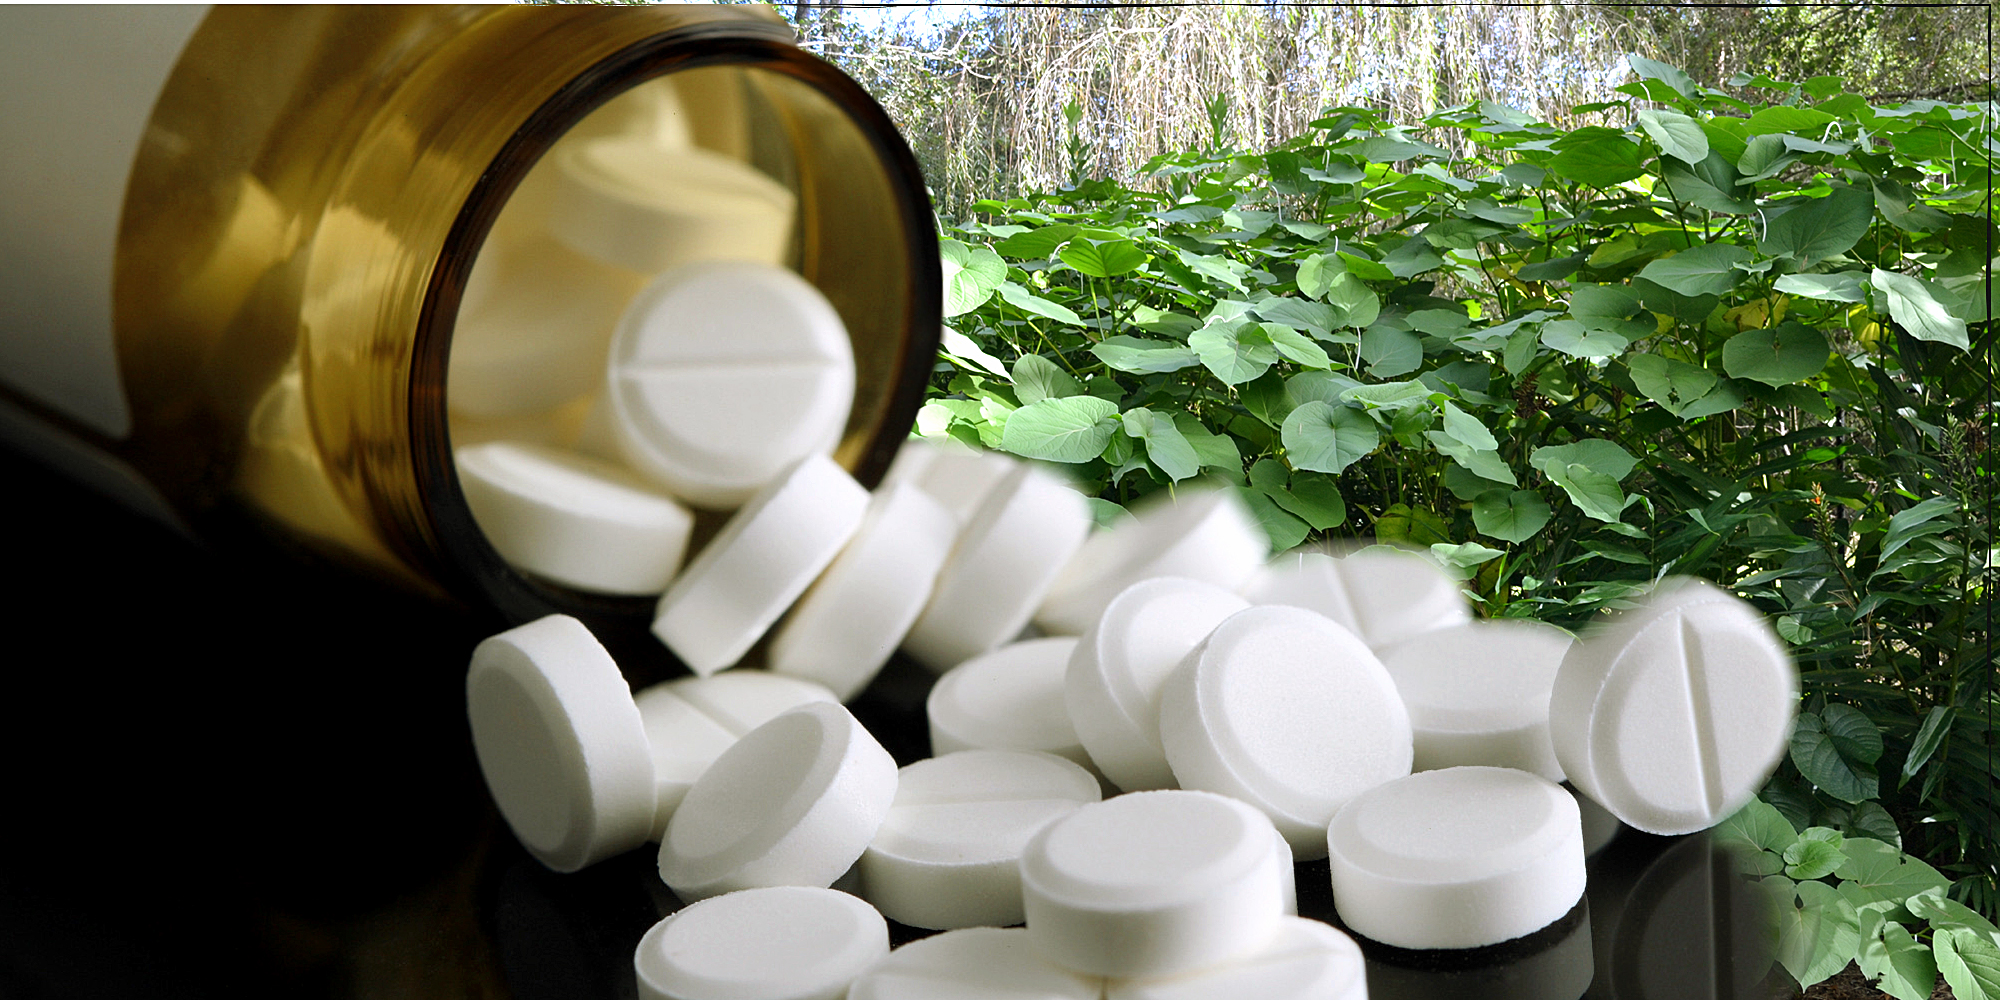 How to use Aspirin in the garden | Nature Bring